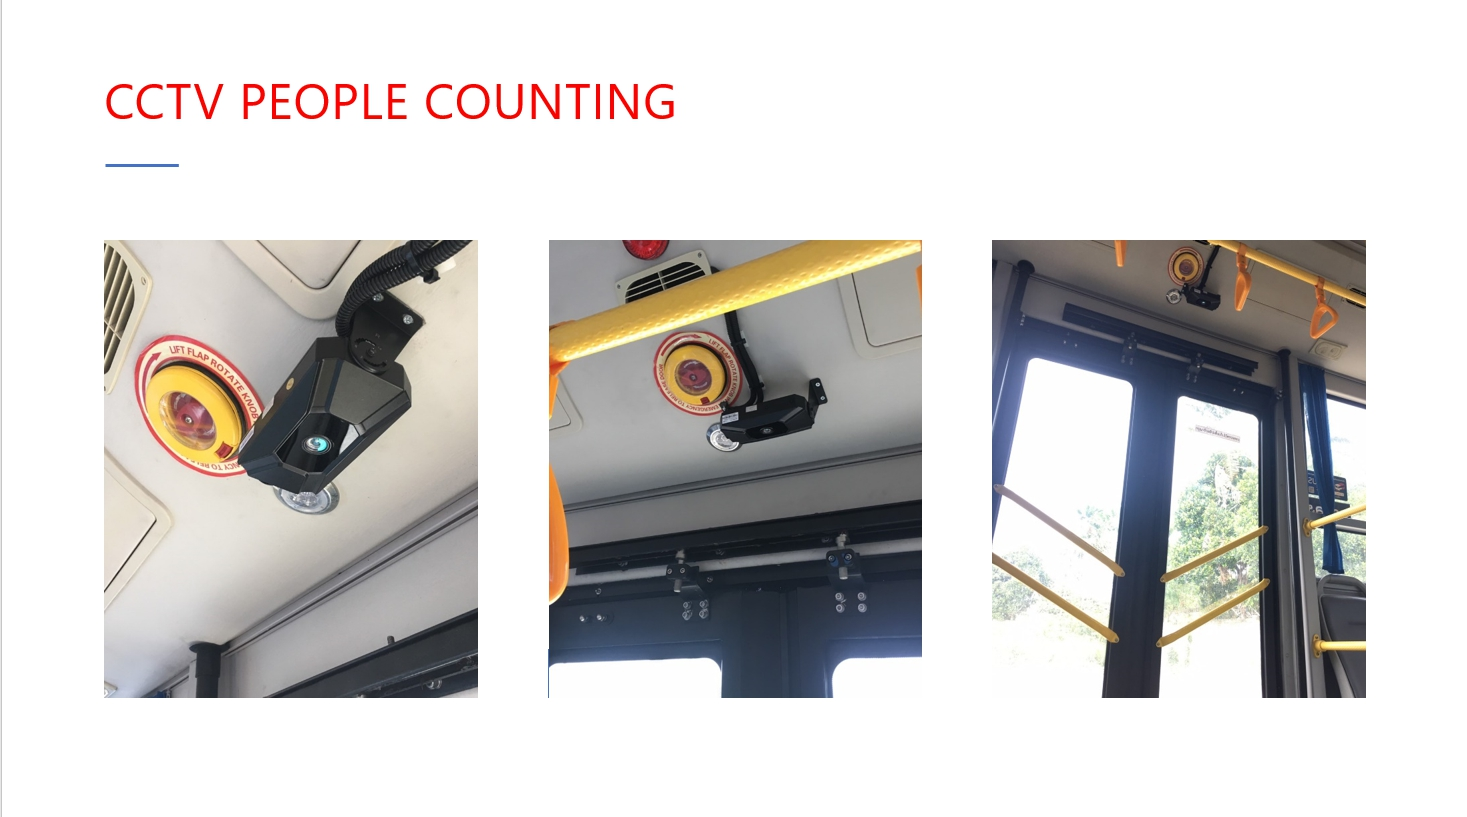 CCTV People Counting